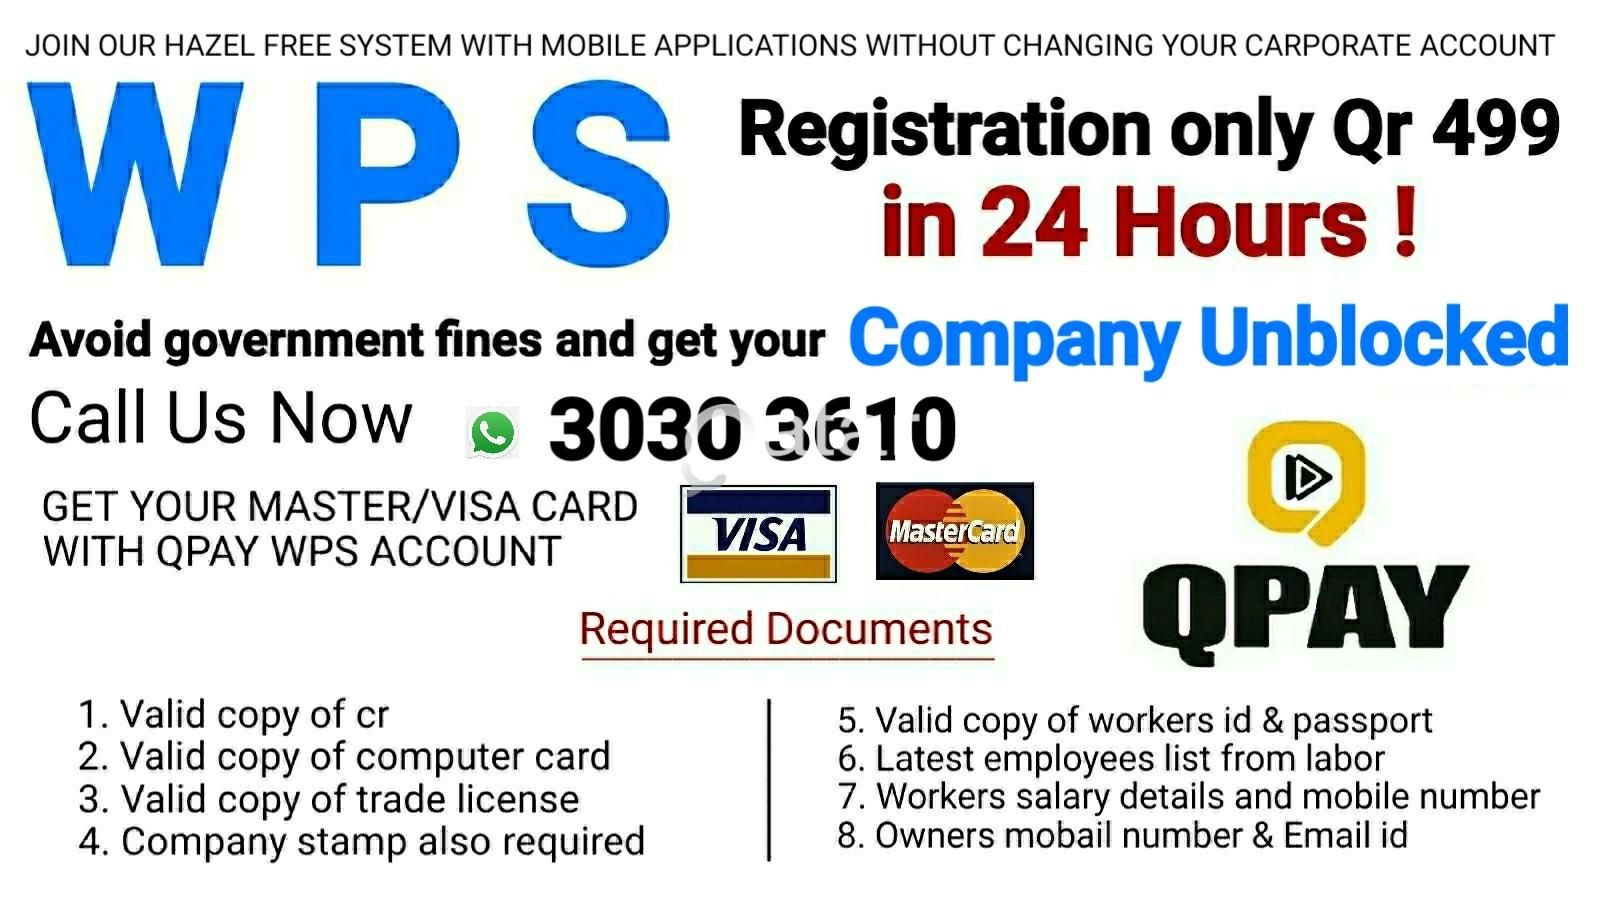 PRO SERVICE WPS Registration in 24 hours CALL US NOW 3030 3610